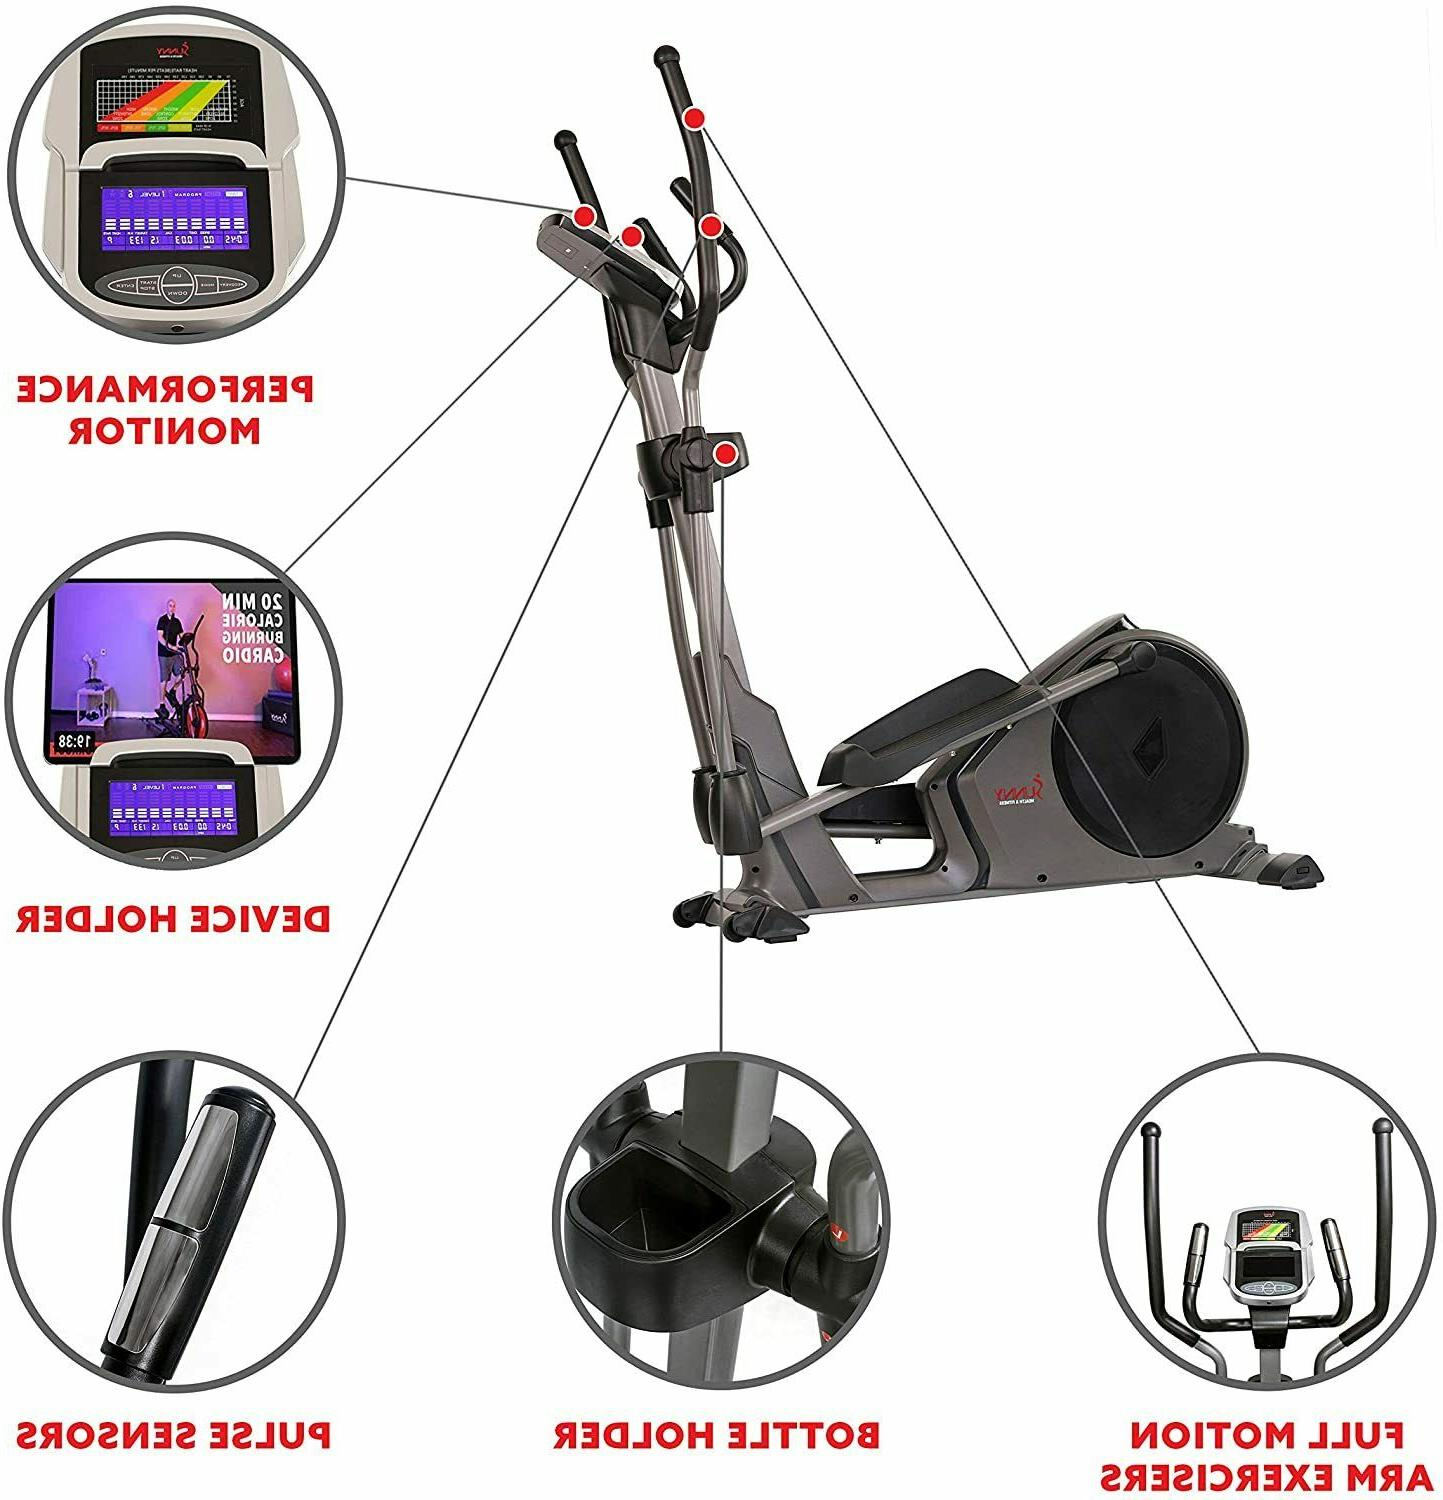 Programmable Cardio Elliptical Trainer w/24 Programs-Delivered apx 5-10 days